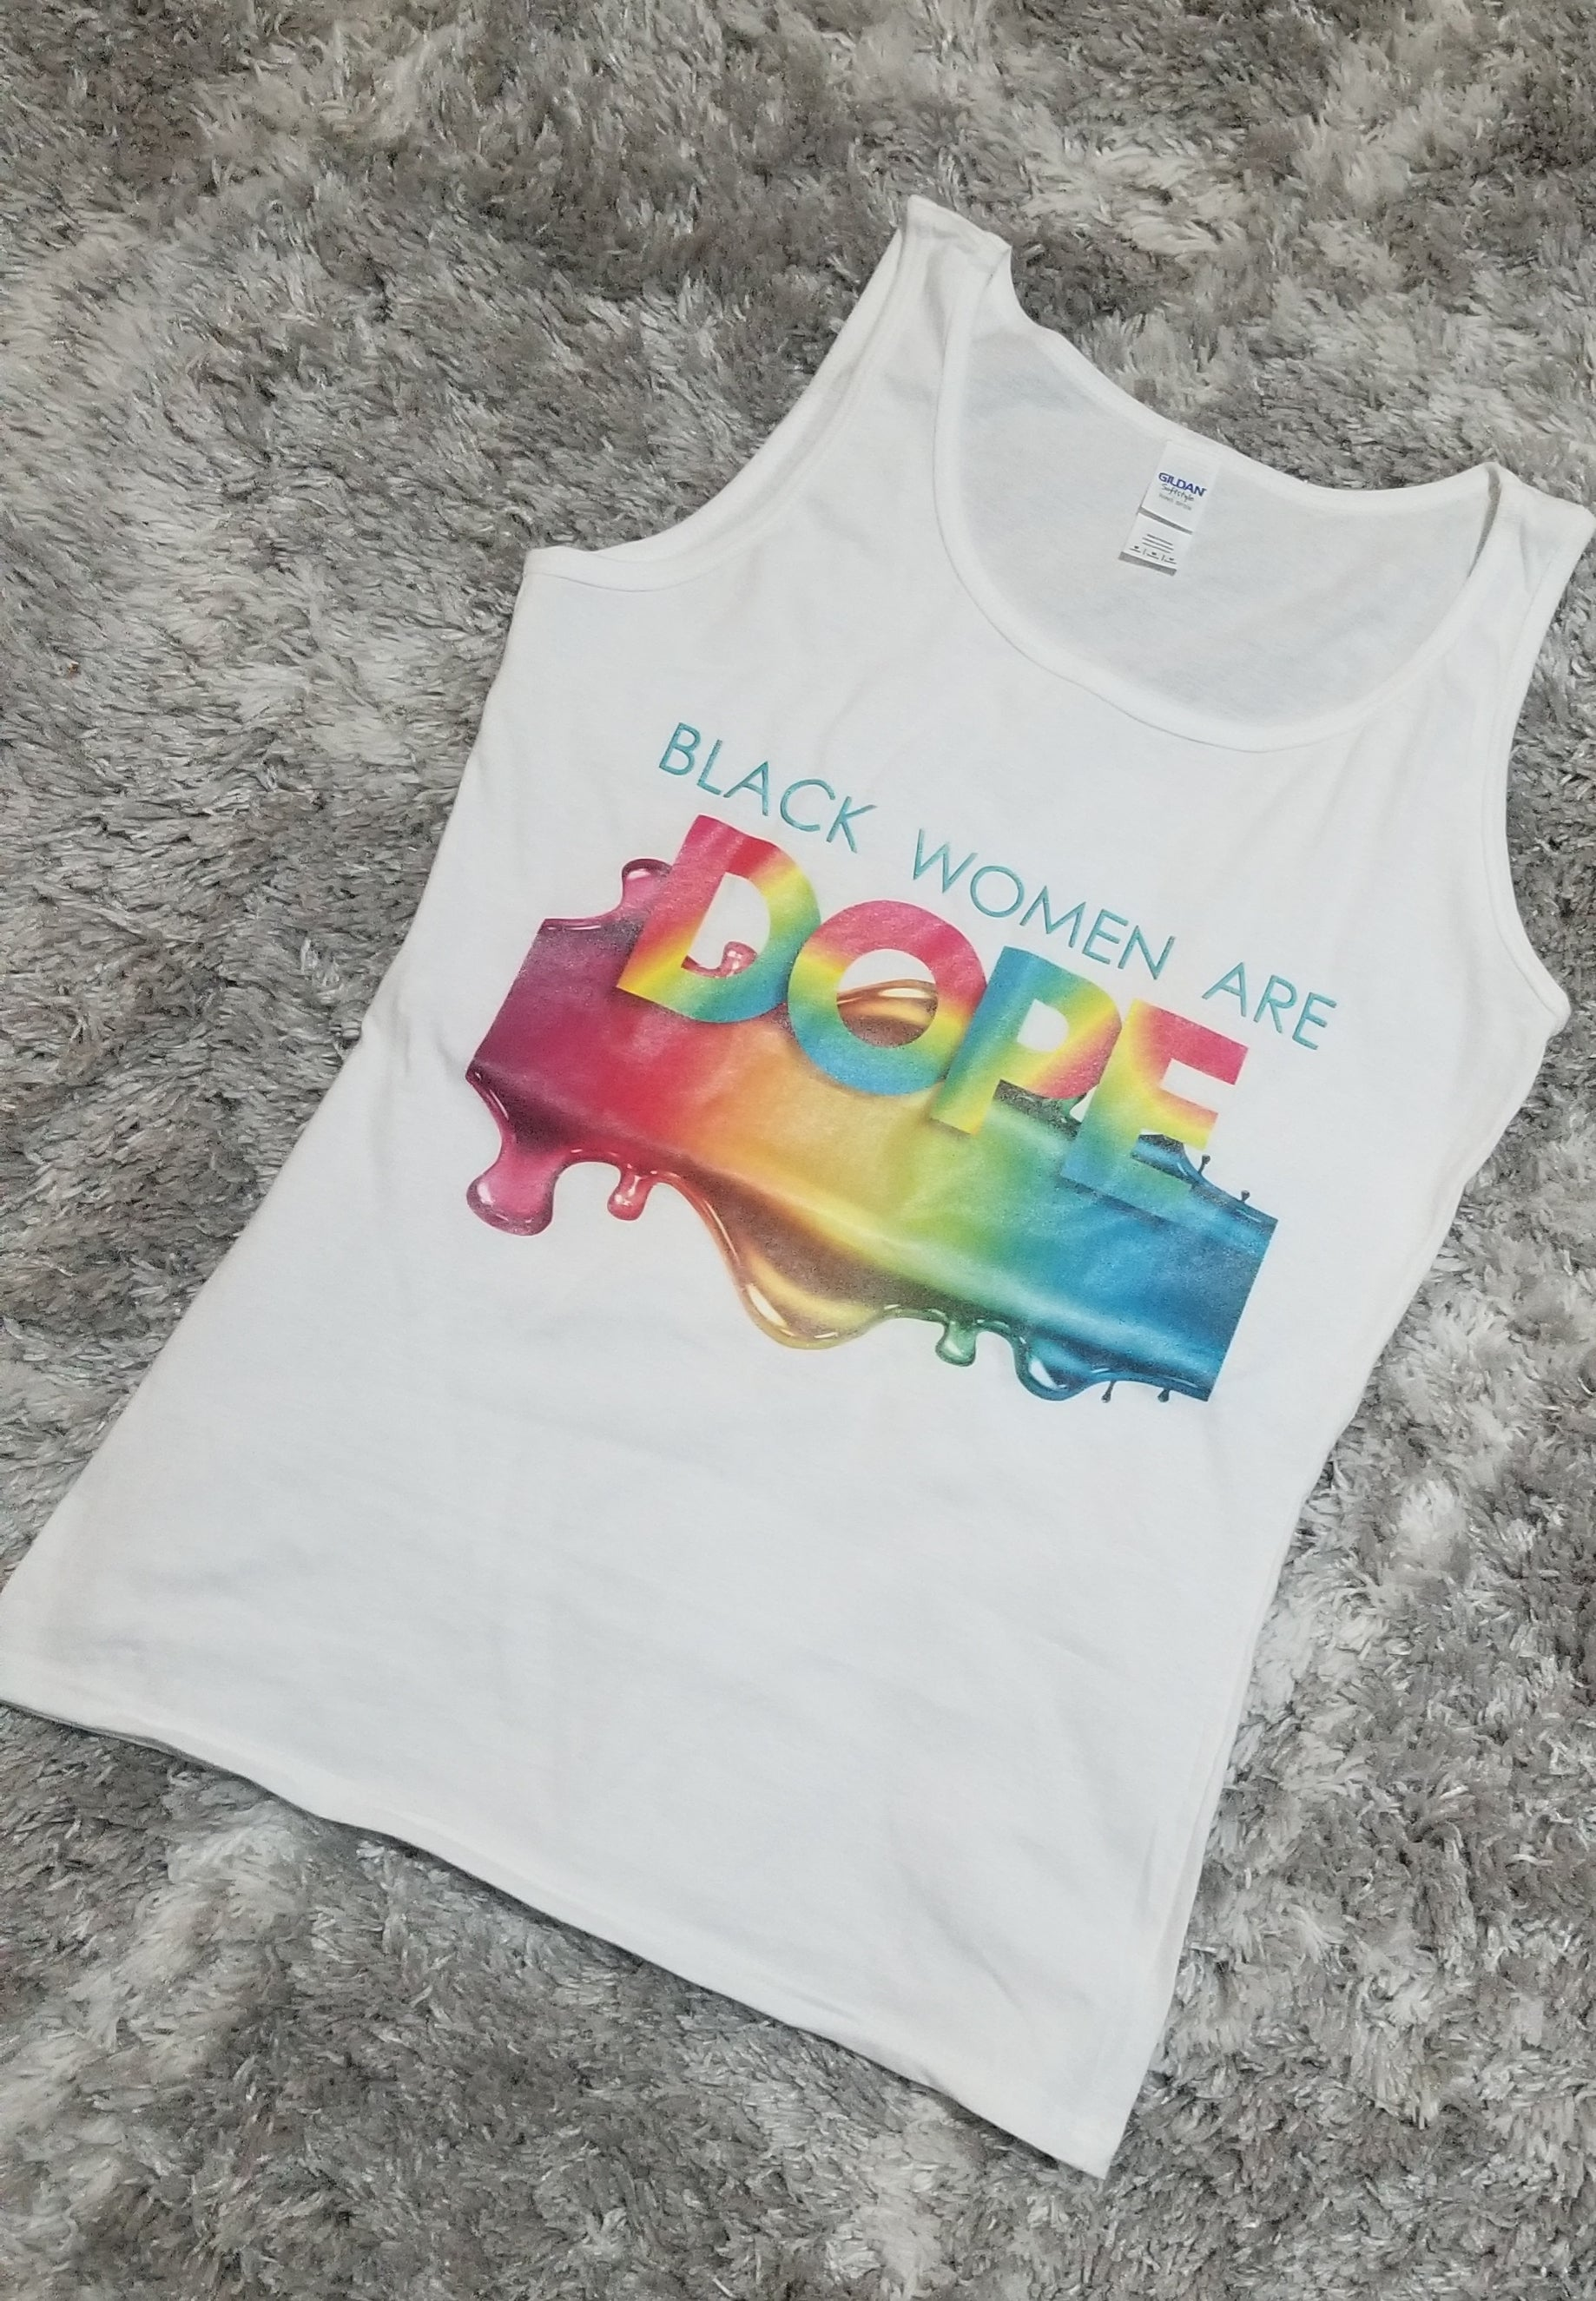 Black Women Are Dope Tank Top